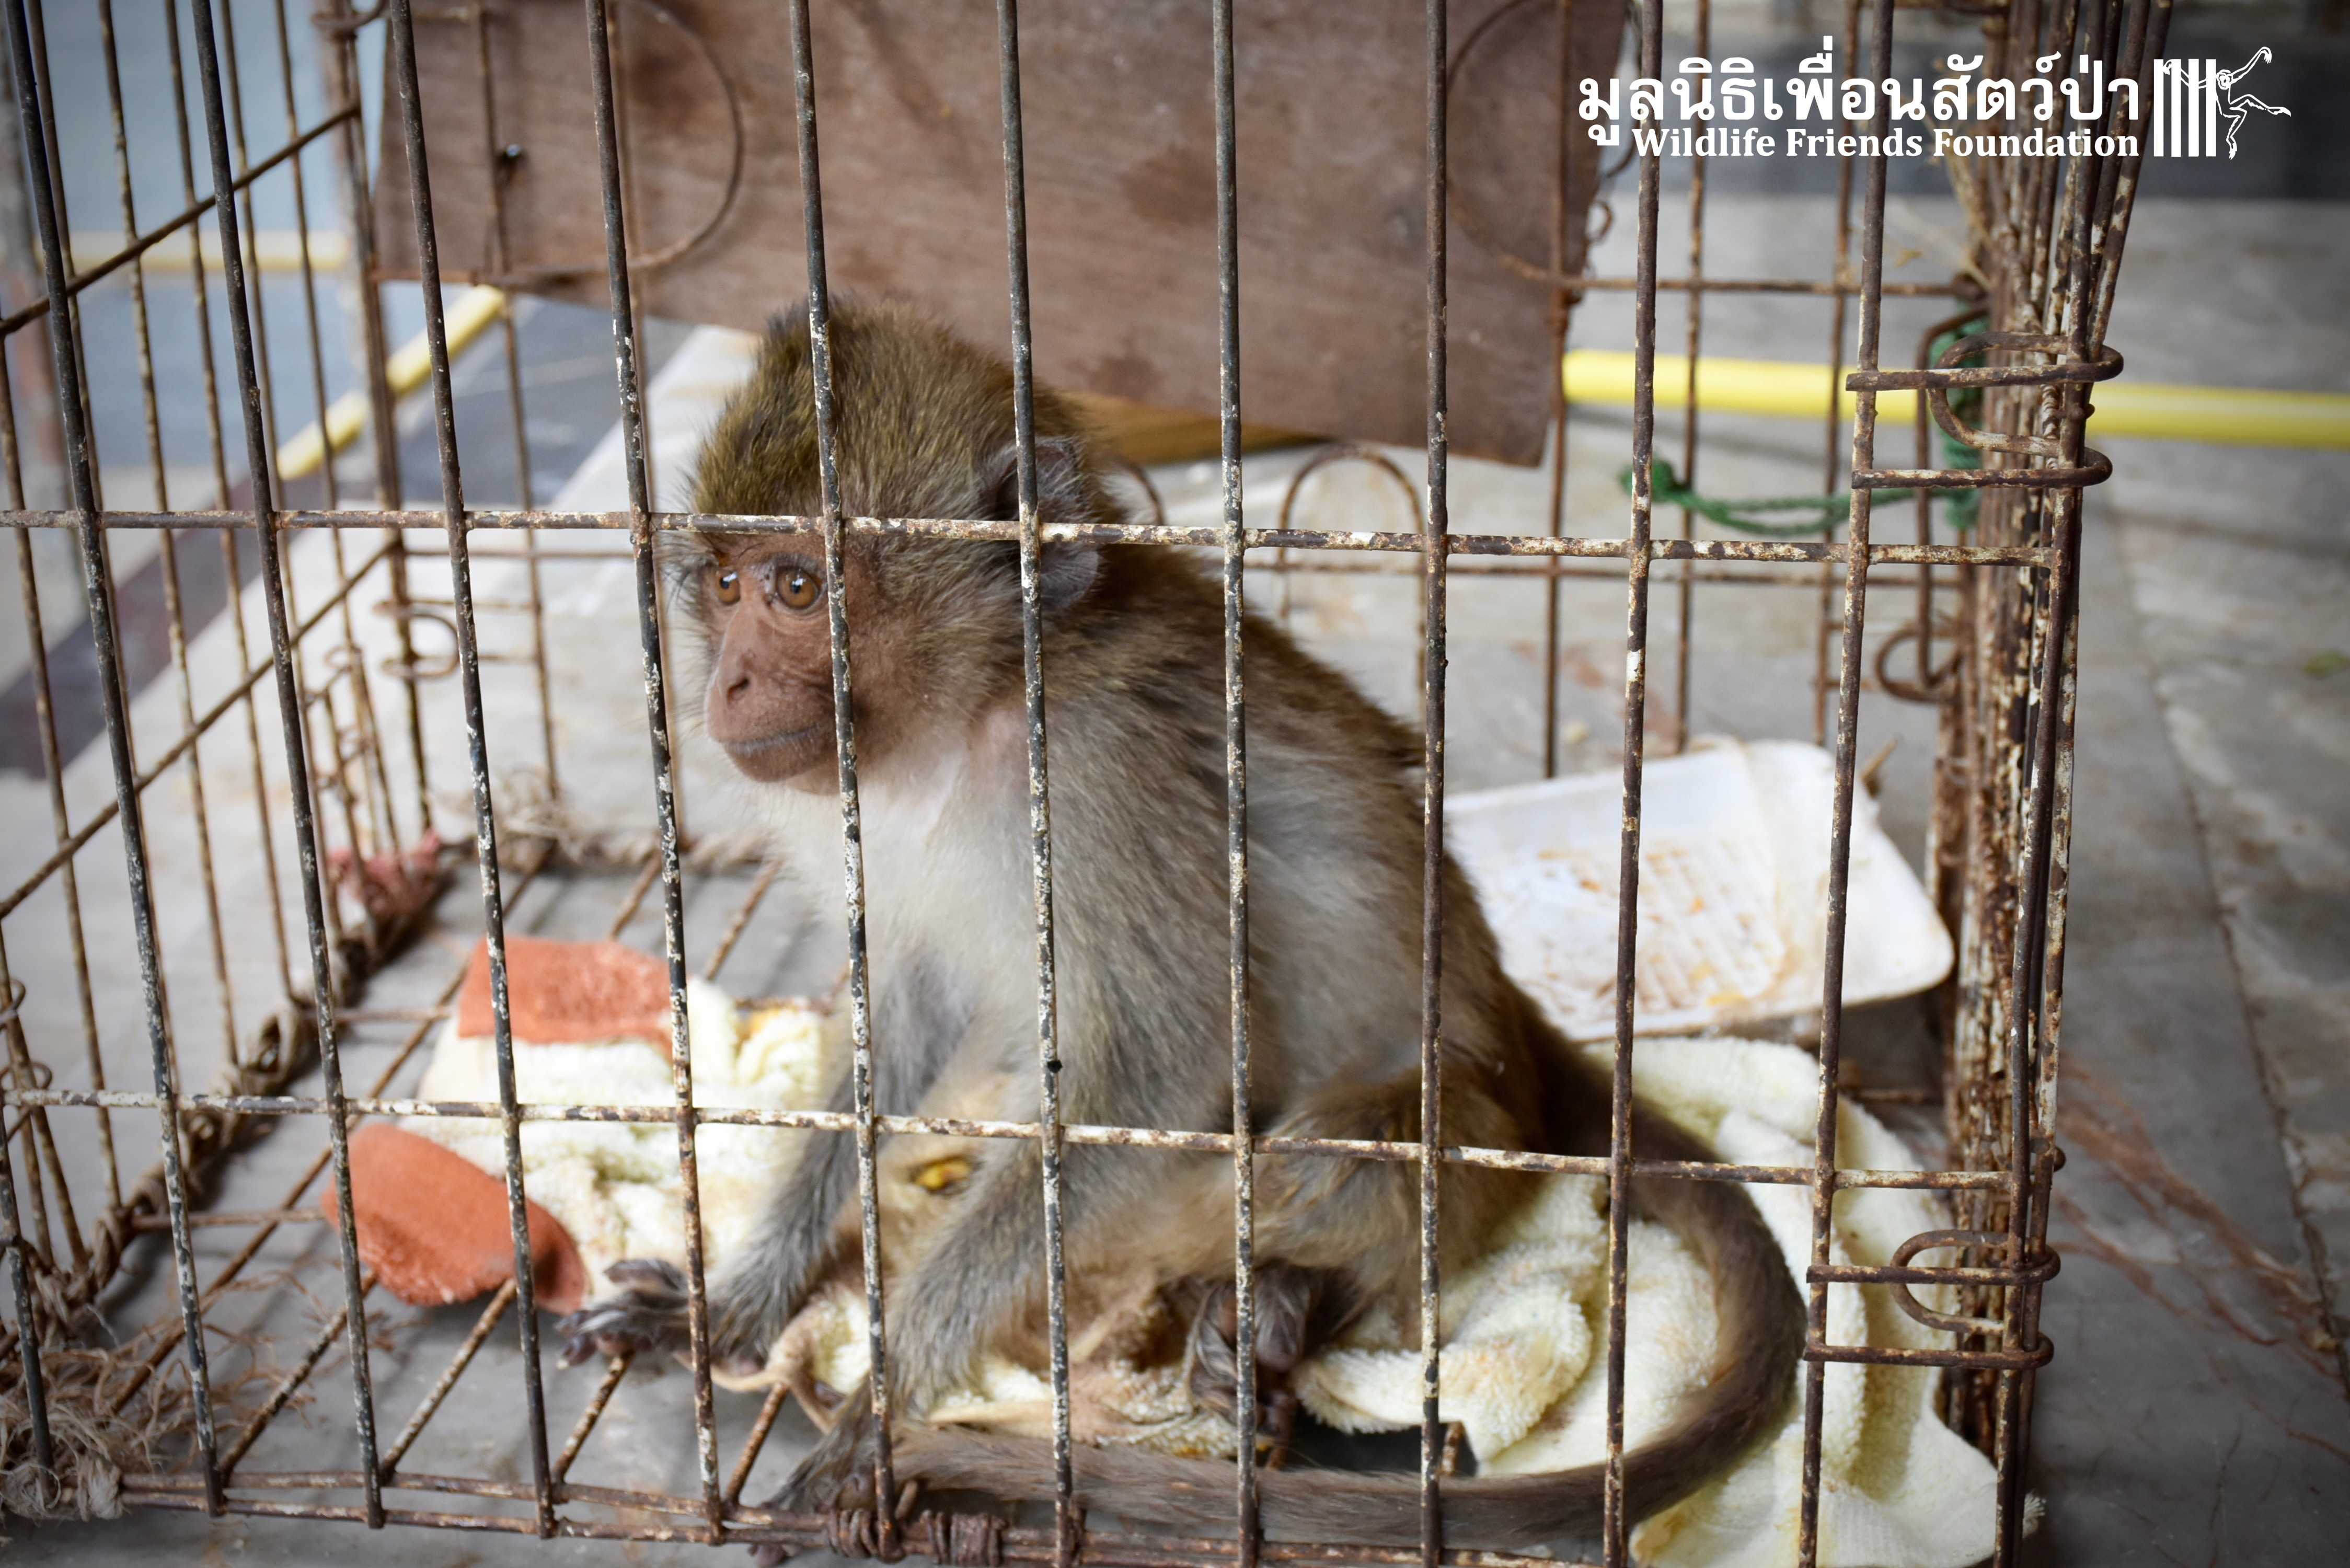 Severely Injured Dog Attack Long-Tailed Macaque Rescued